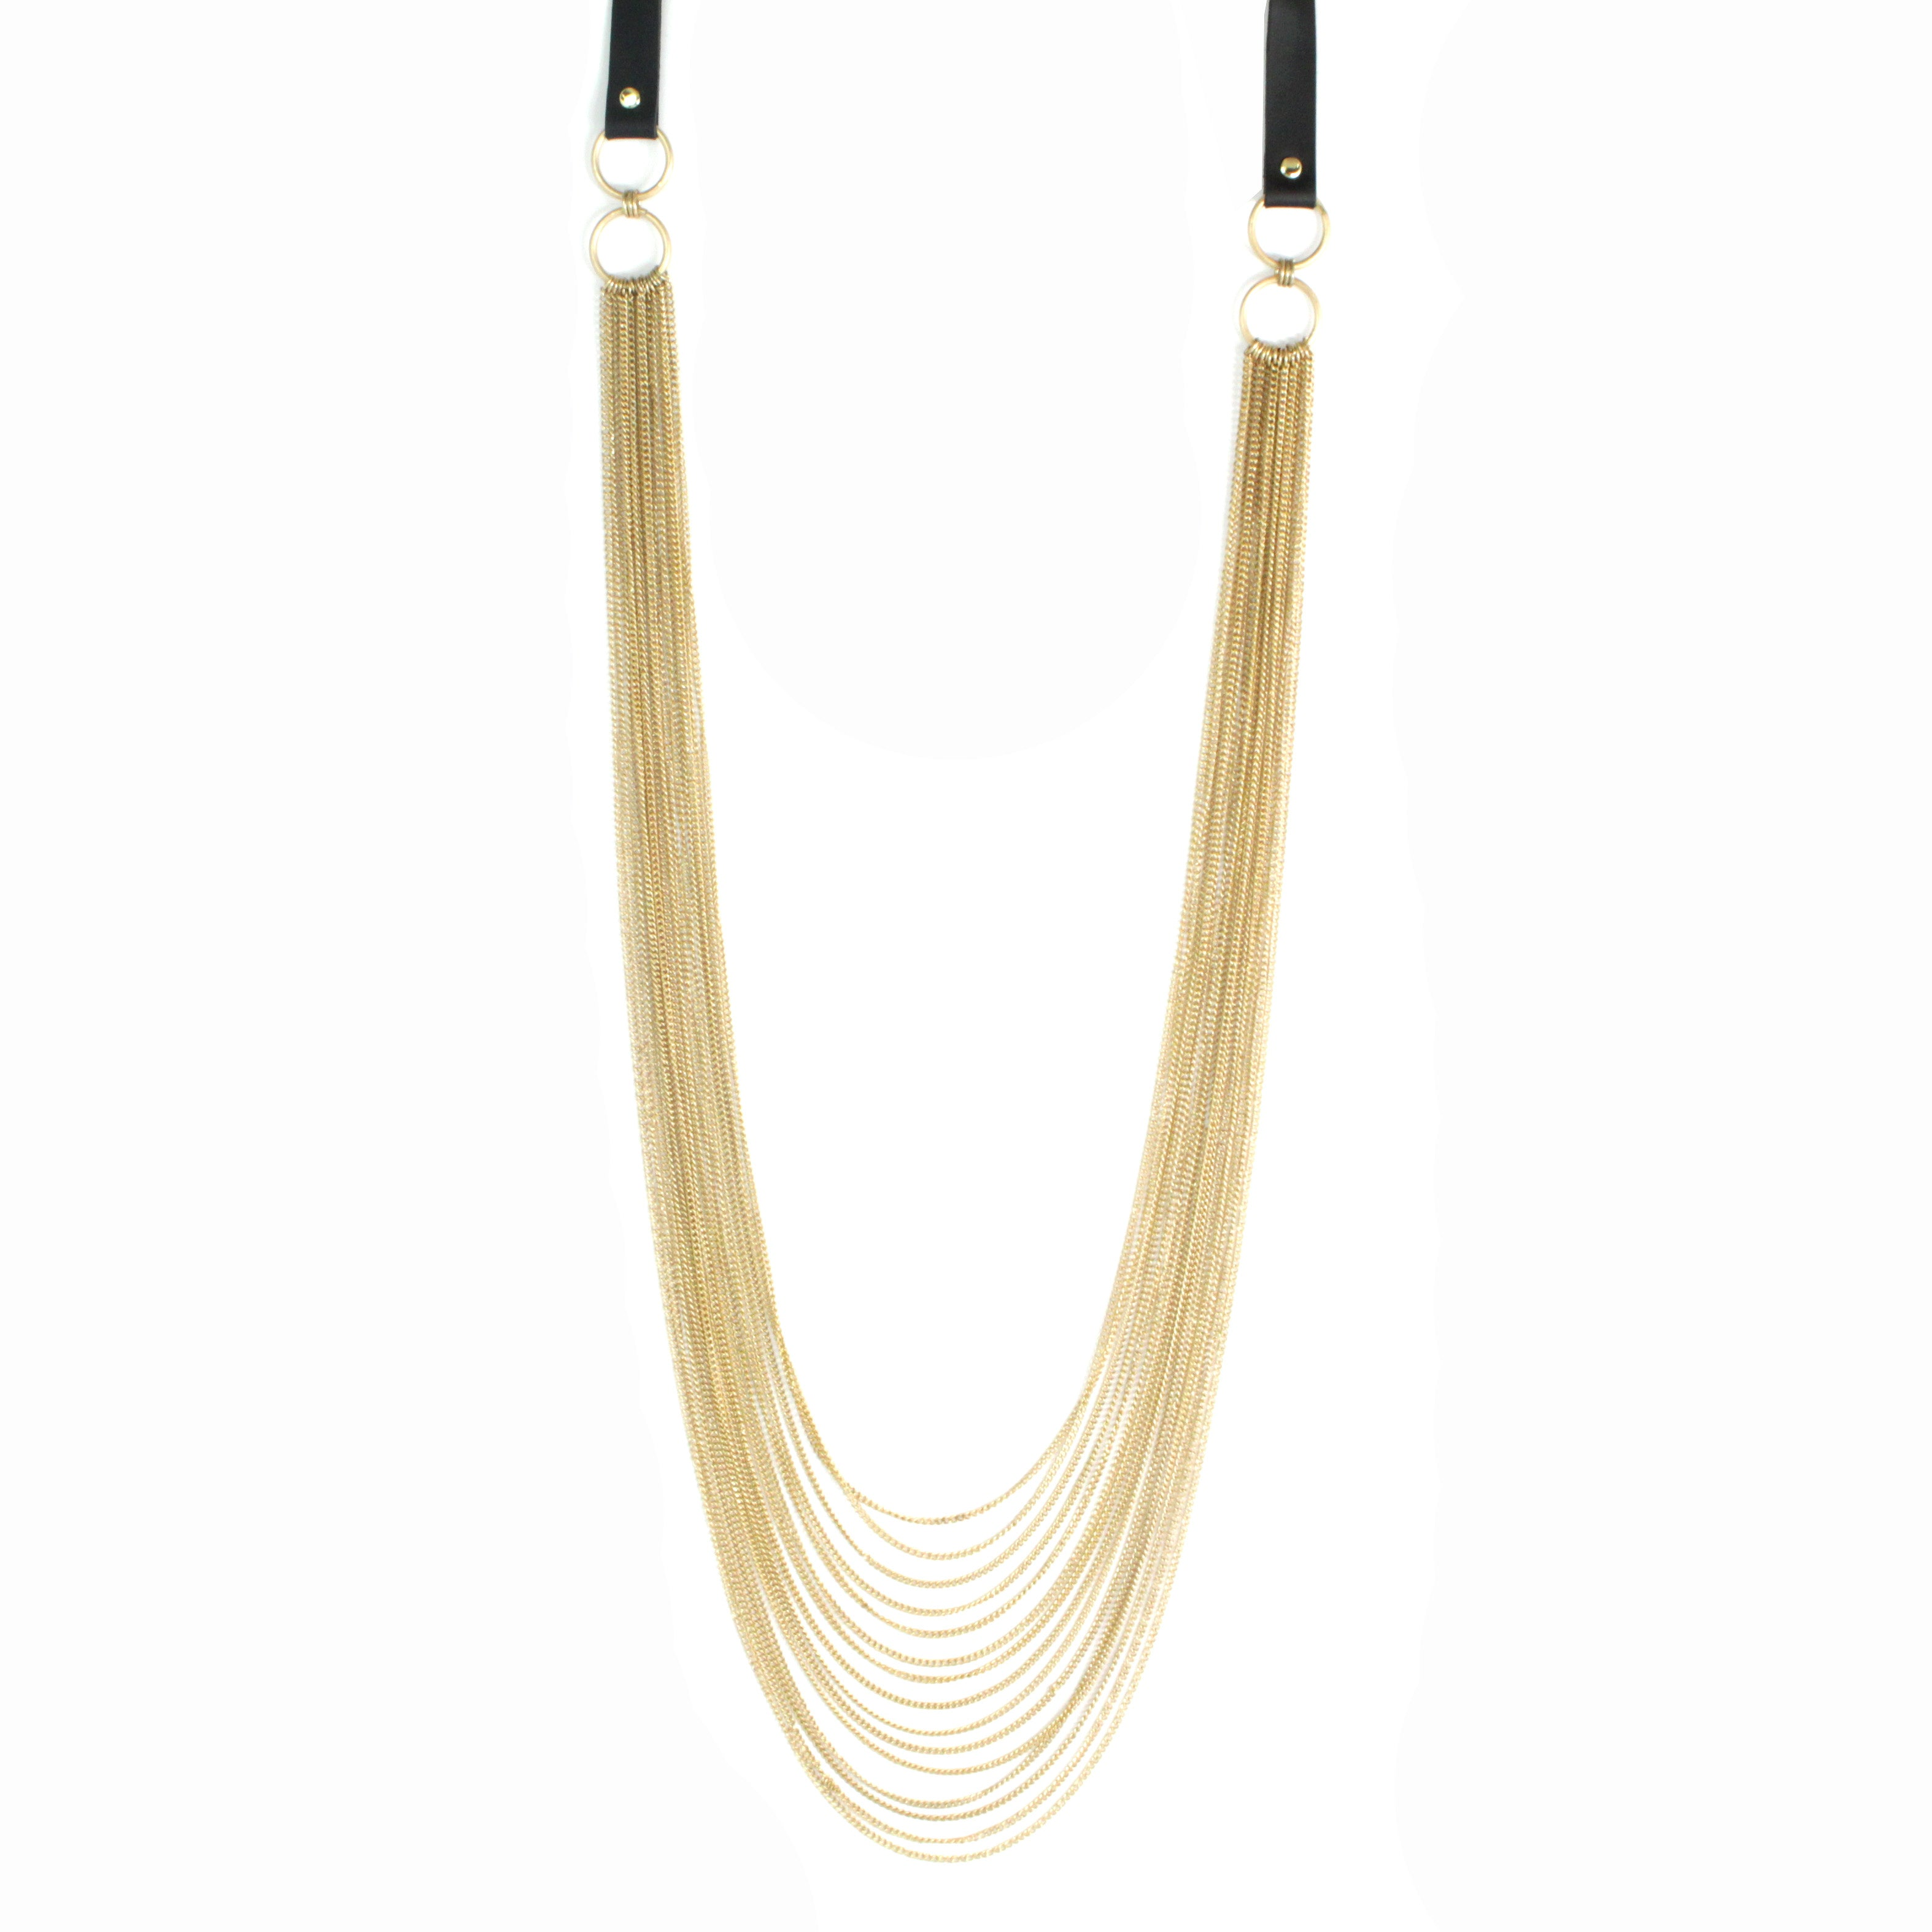 Multi Layered Chian with Leather  Long Necklace